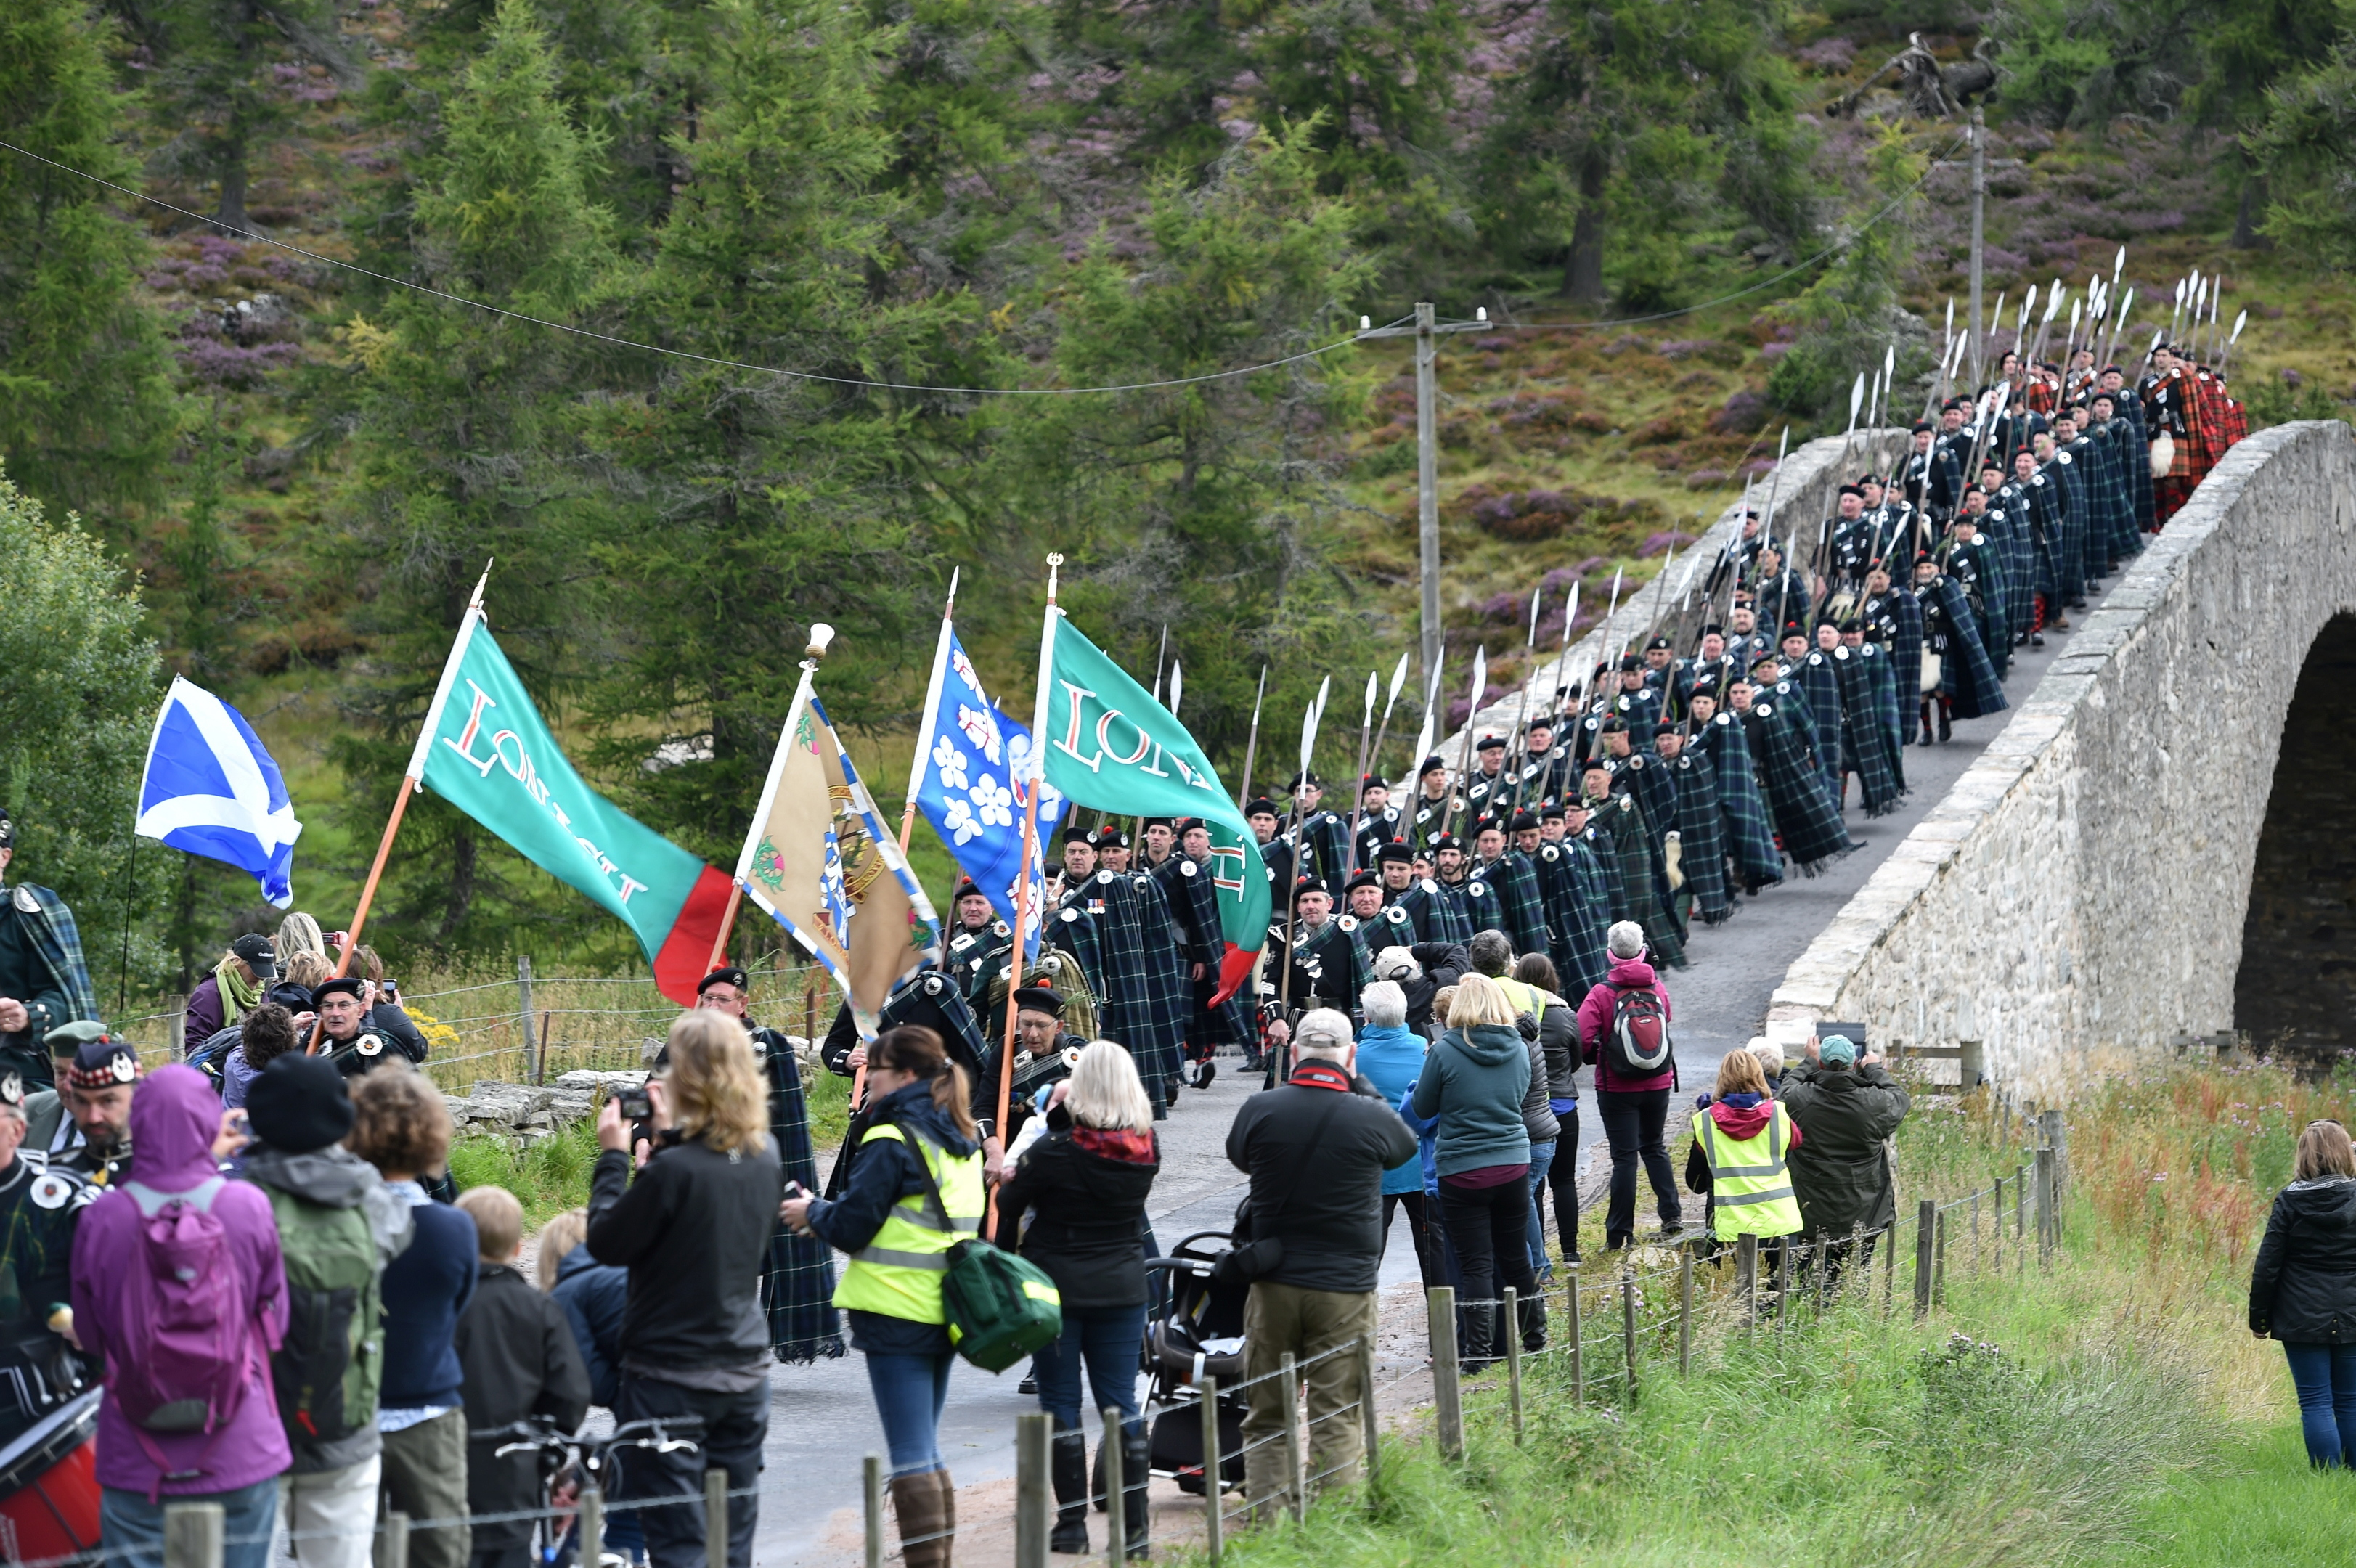 The Lonach Highlanders marched from Strathdon to Braemar and were to parade for the Queen today.